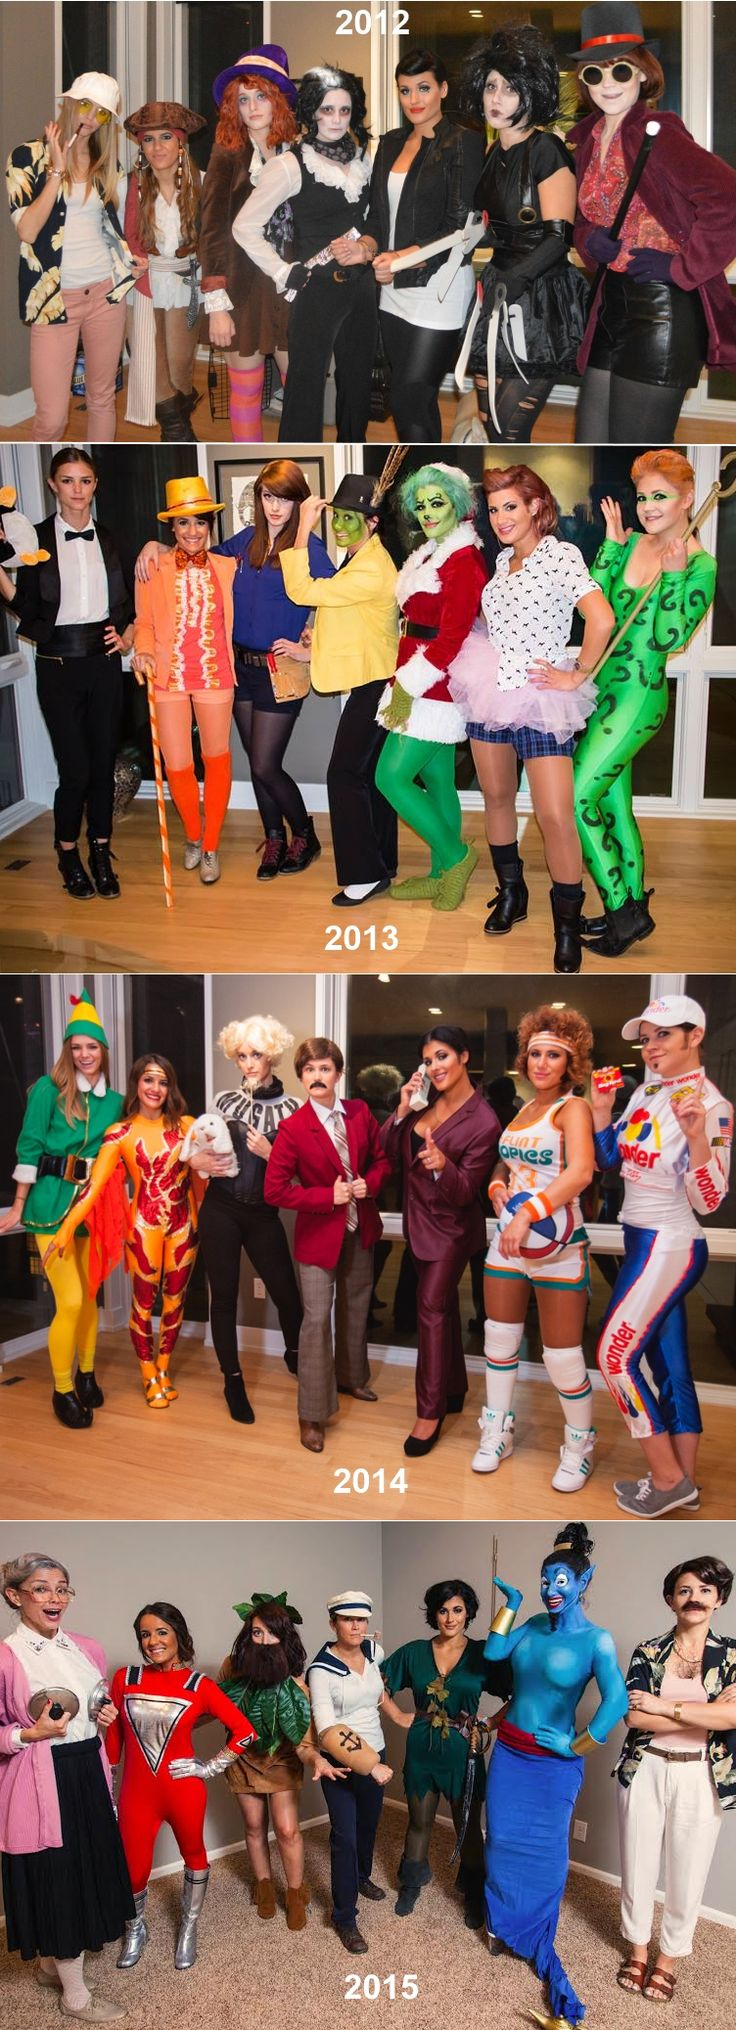 Costume ideas for groups - Group Costumes Imgur